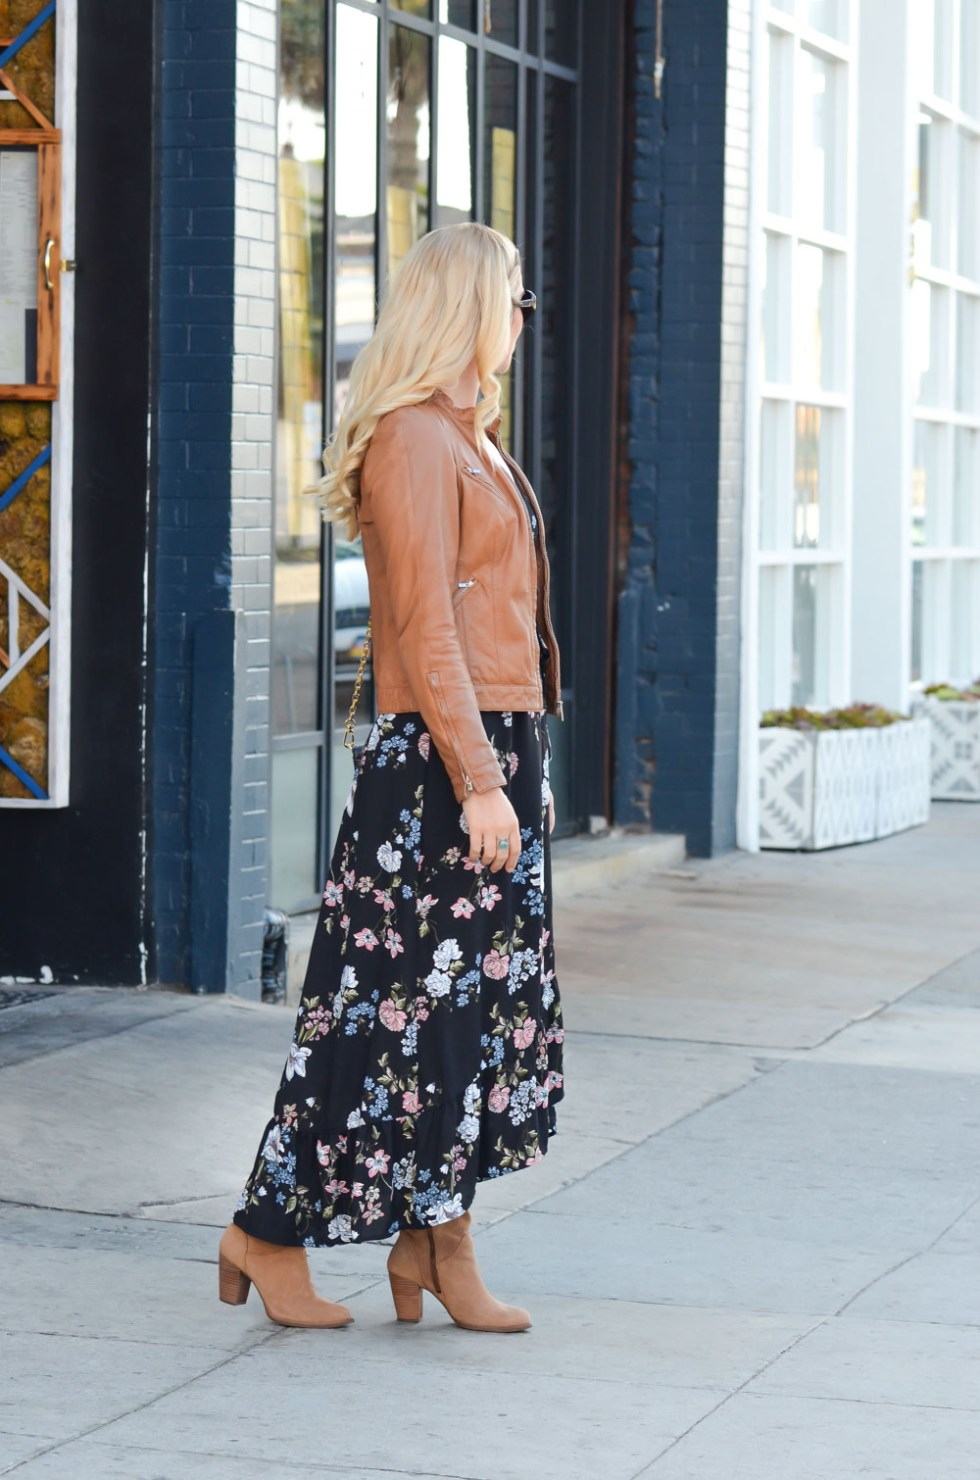 Leather Jacket + Wrap Dress w. Suede Boots Fall Outfit